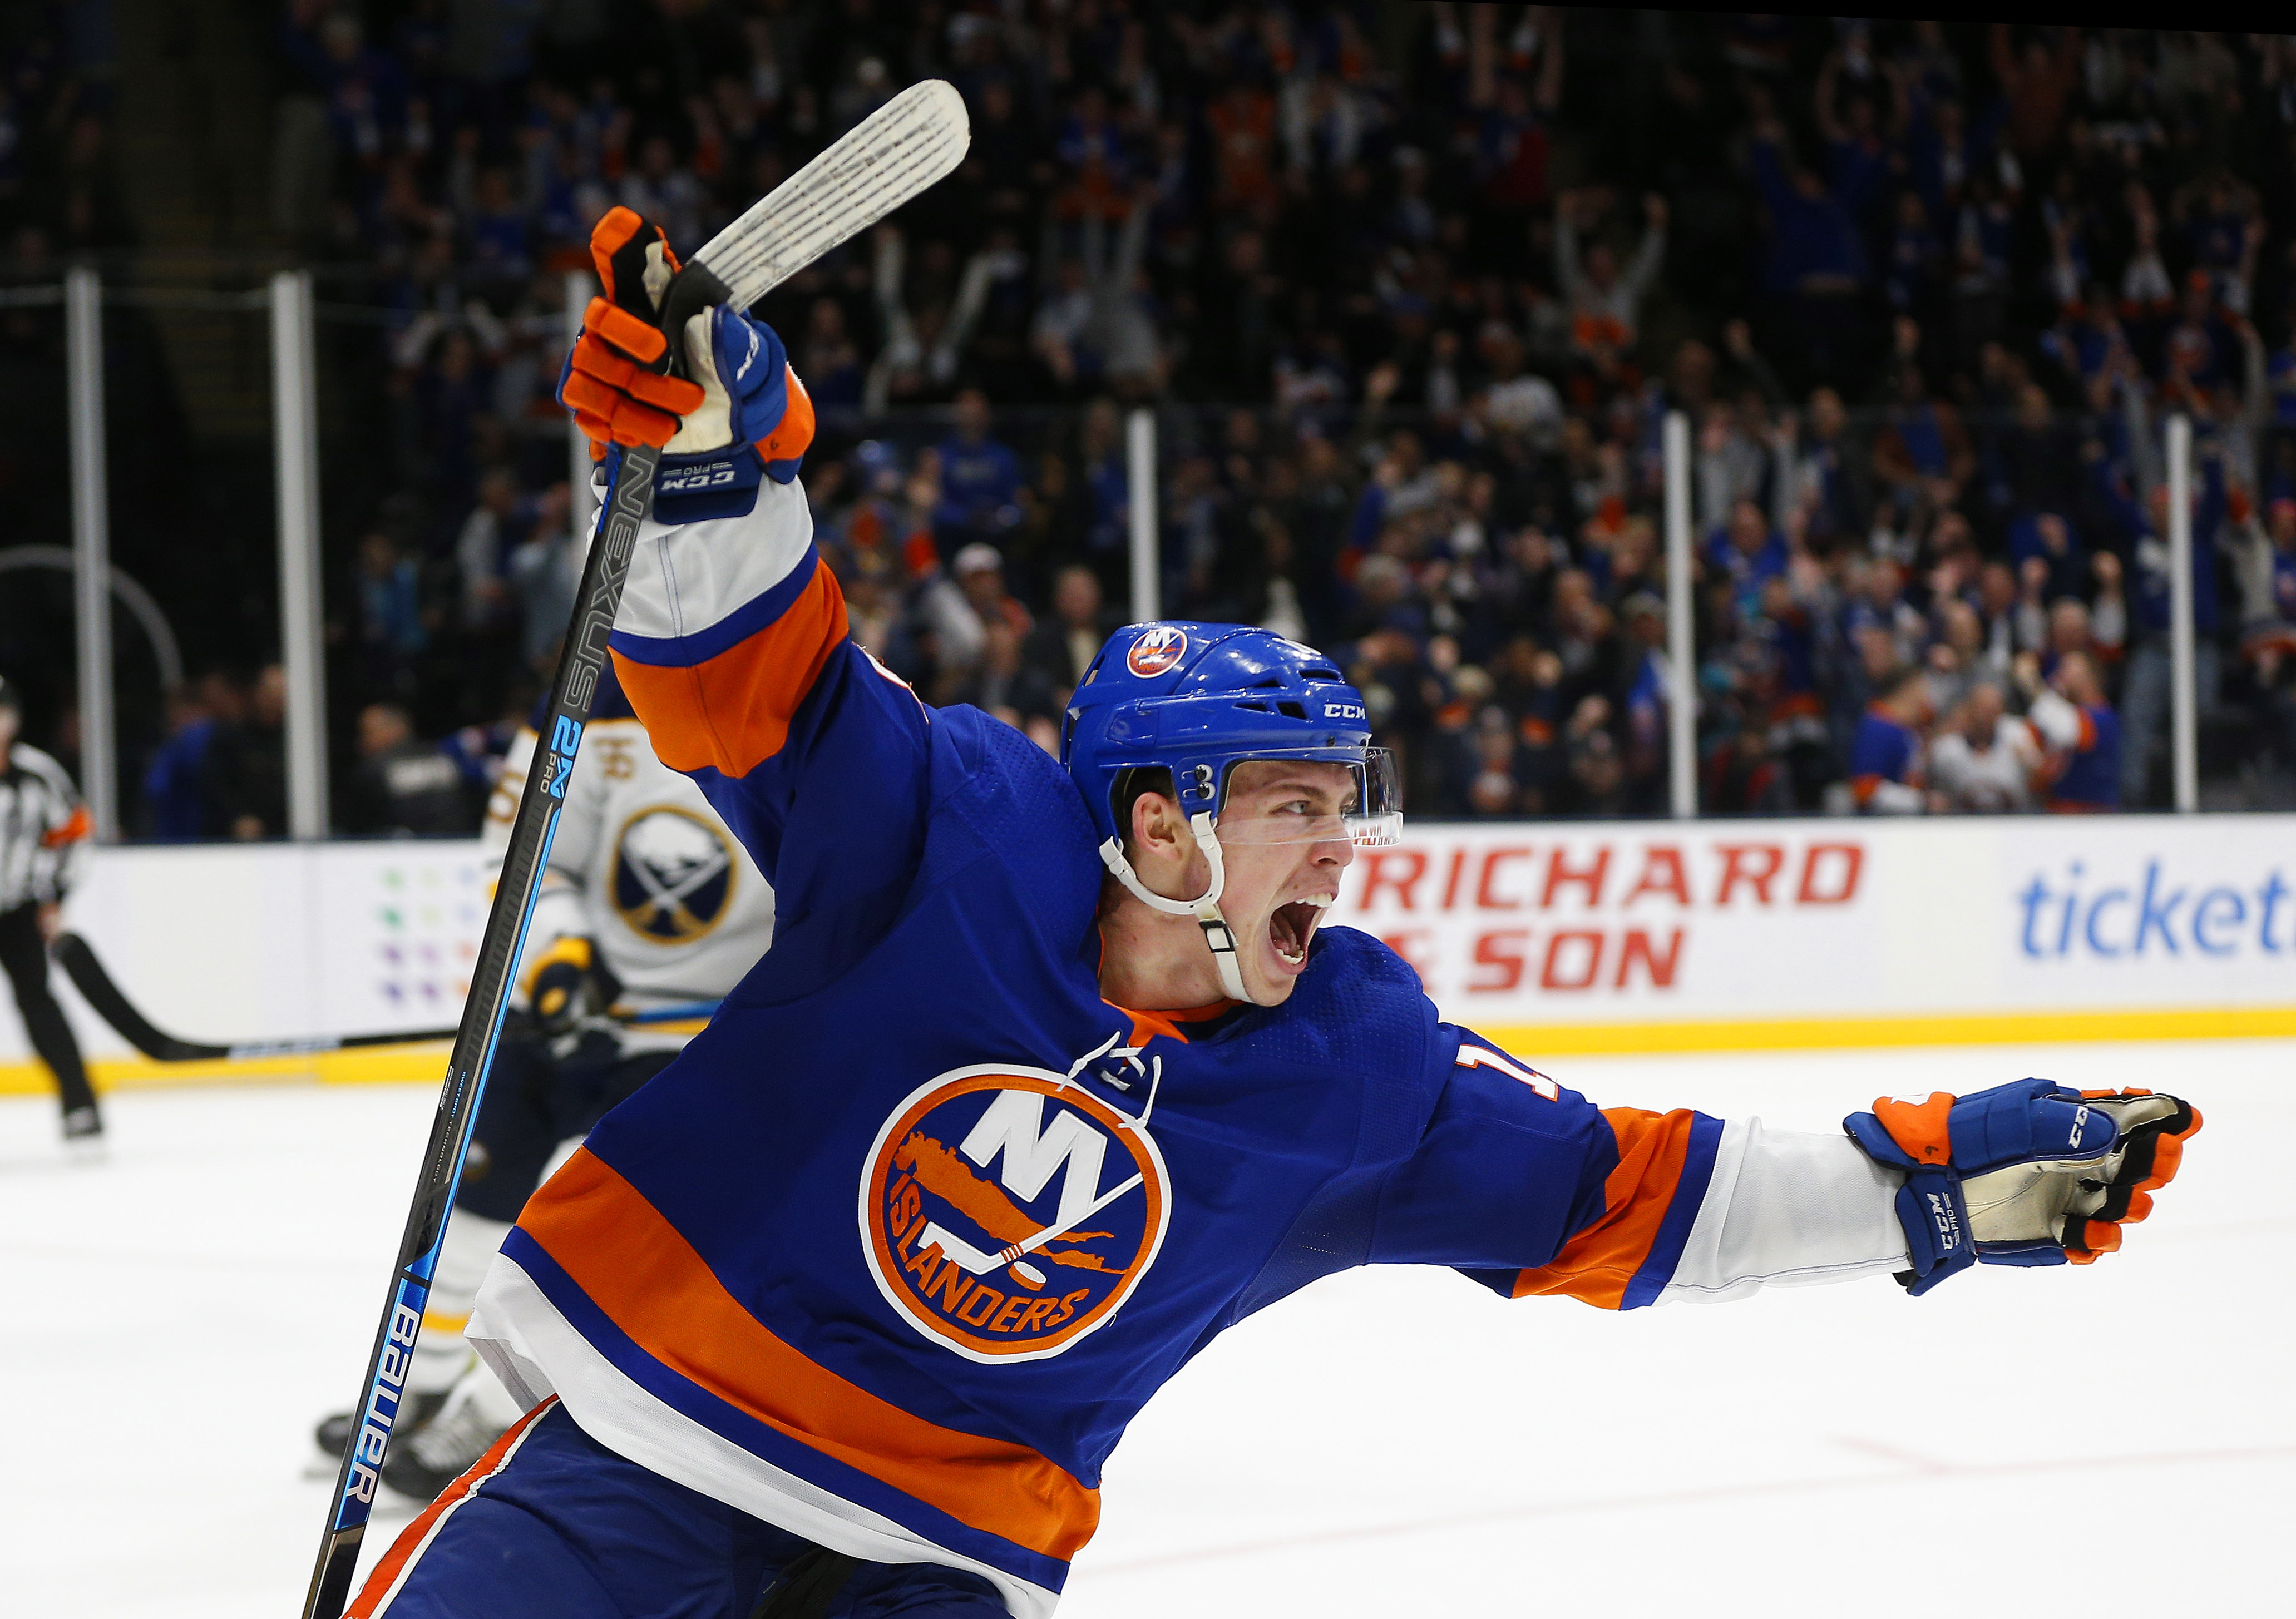 Beauvillier heroics another sign of growth in Isles forward's game